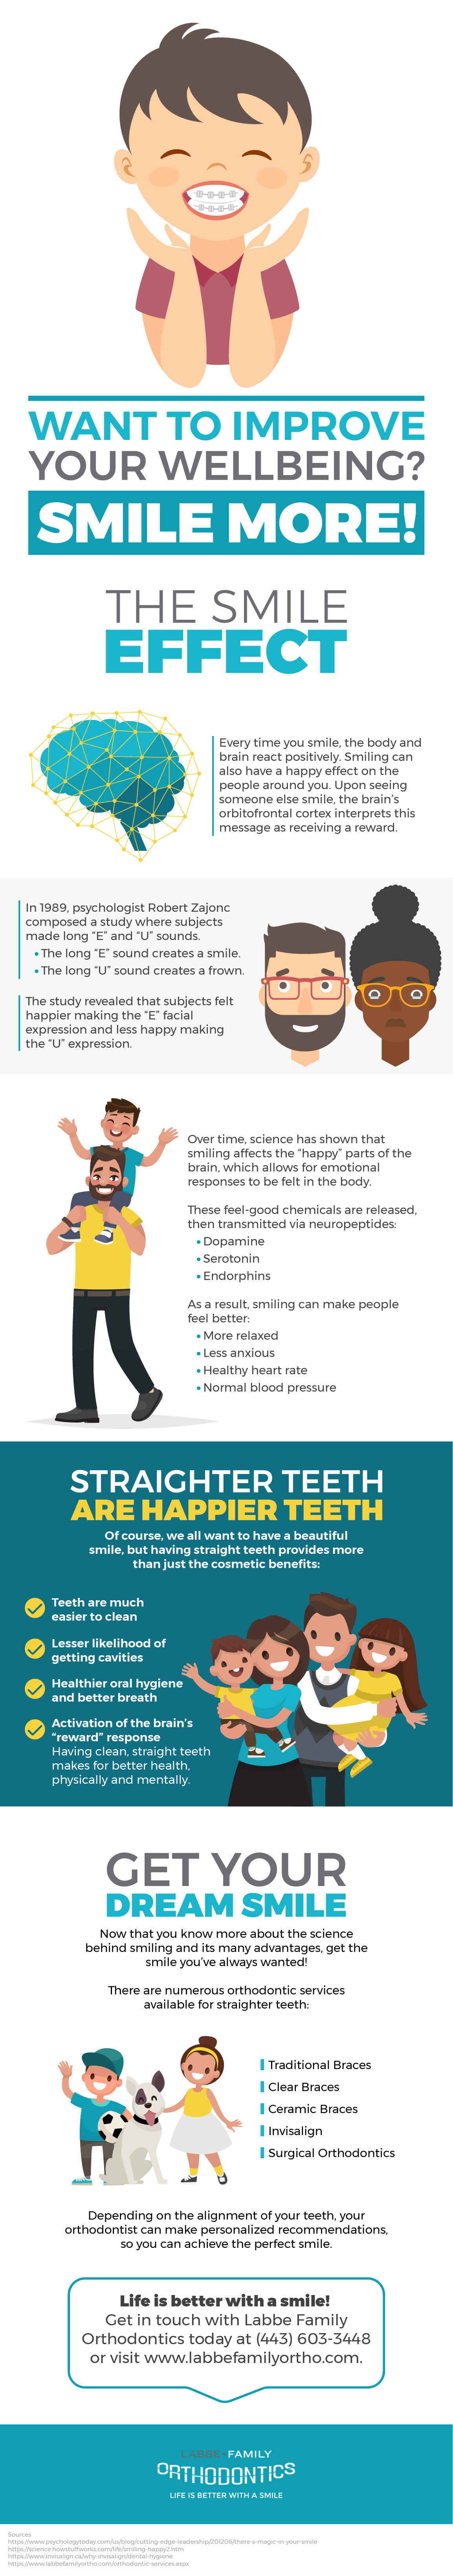 Smiling Can Improve Your Wellbeing Infographic